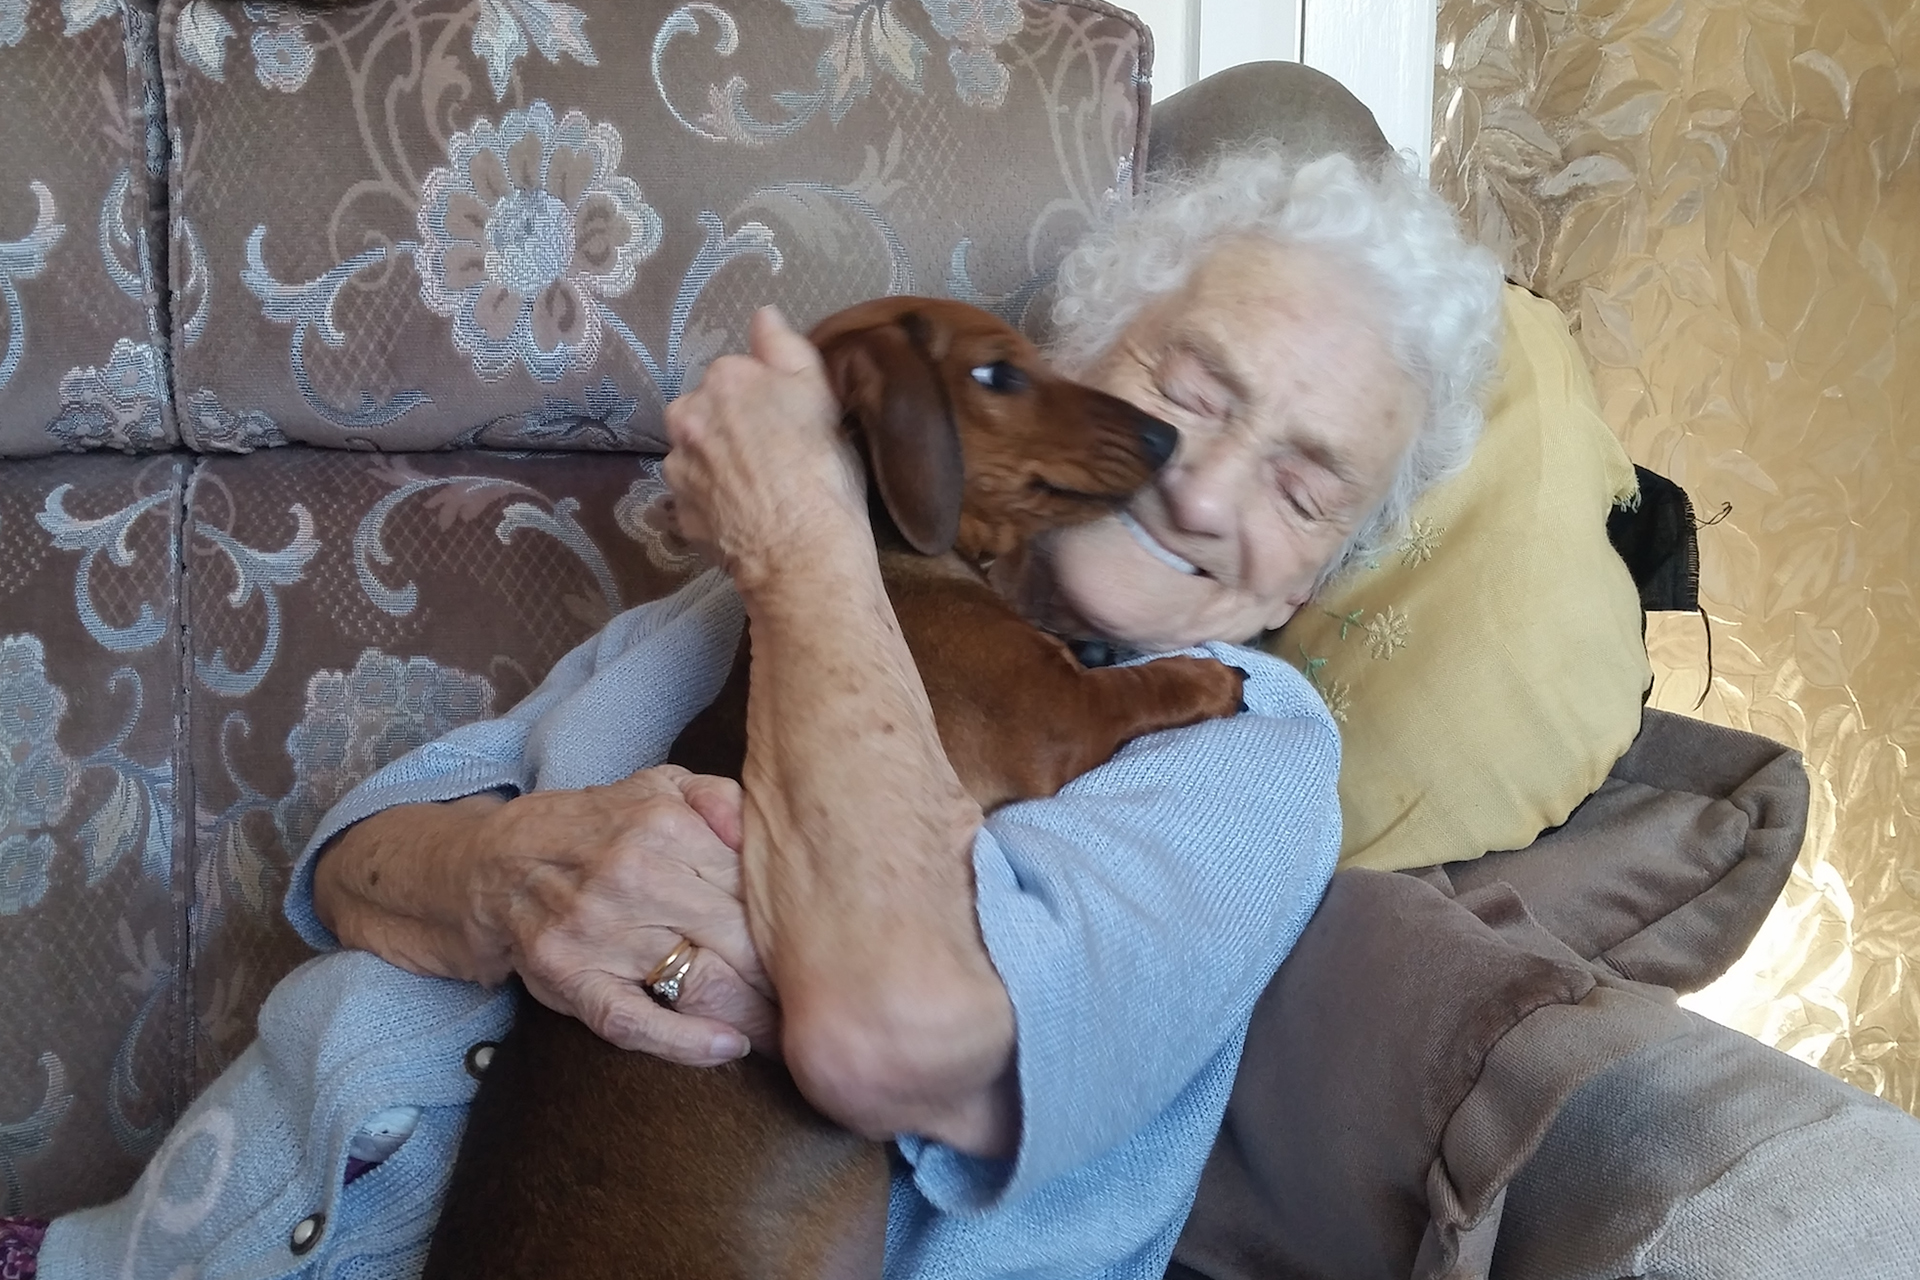 Woman with Alzheimer's disease befriends dachshund puppy